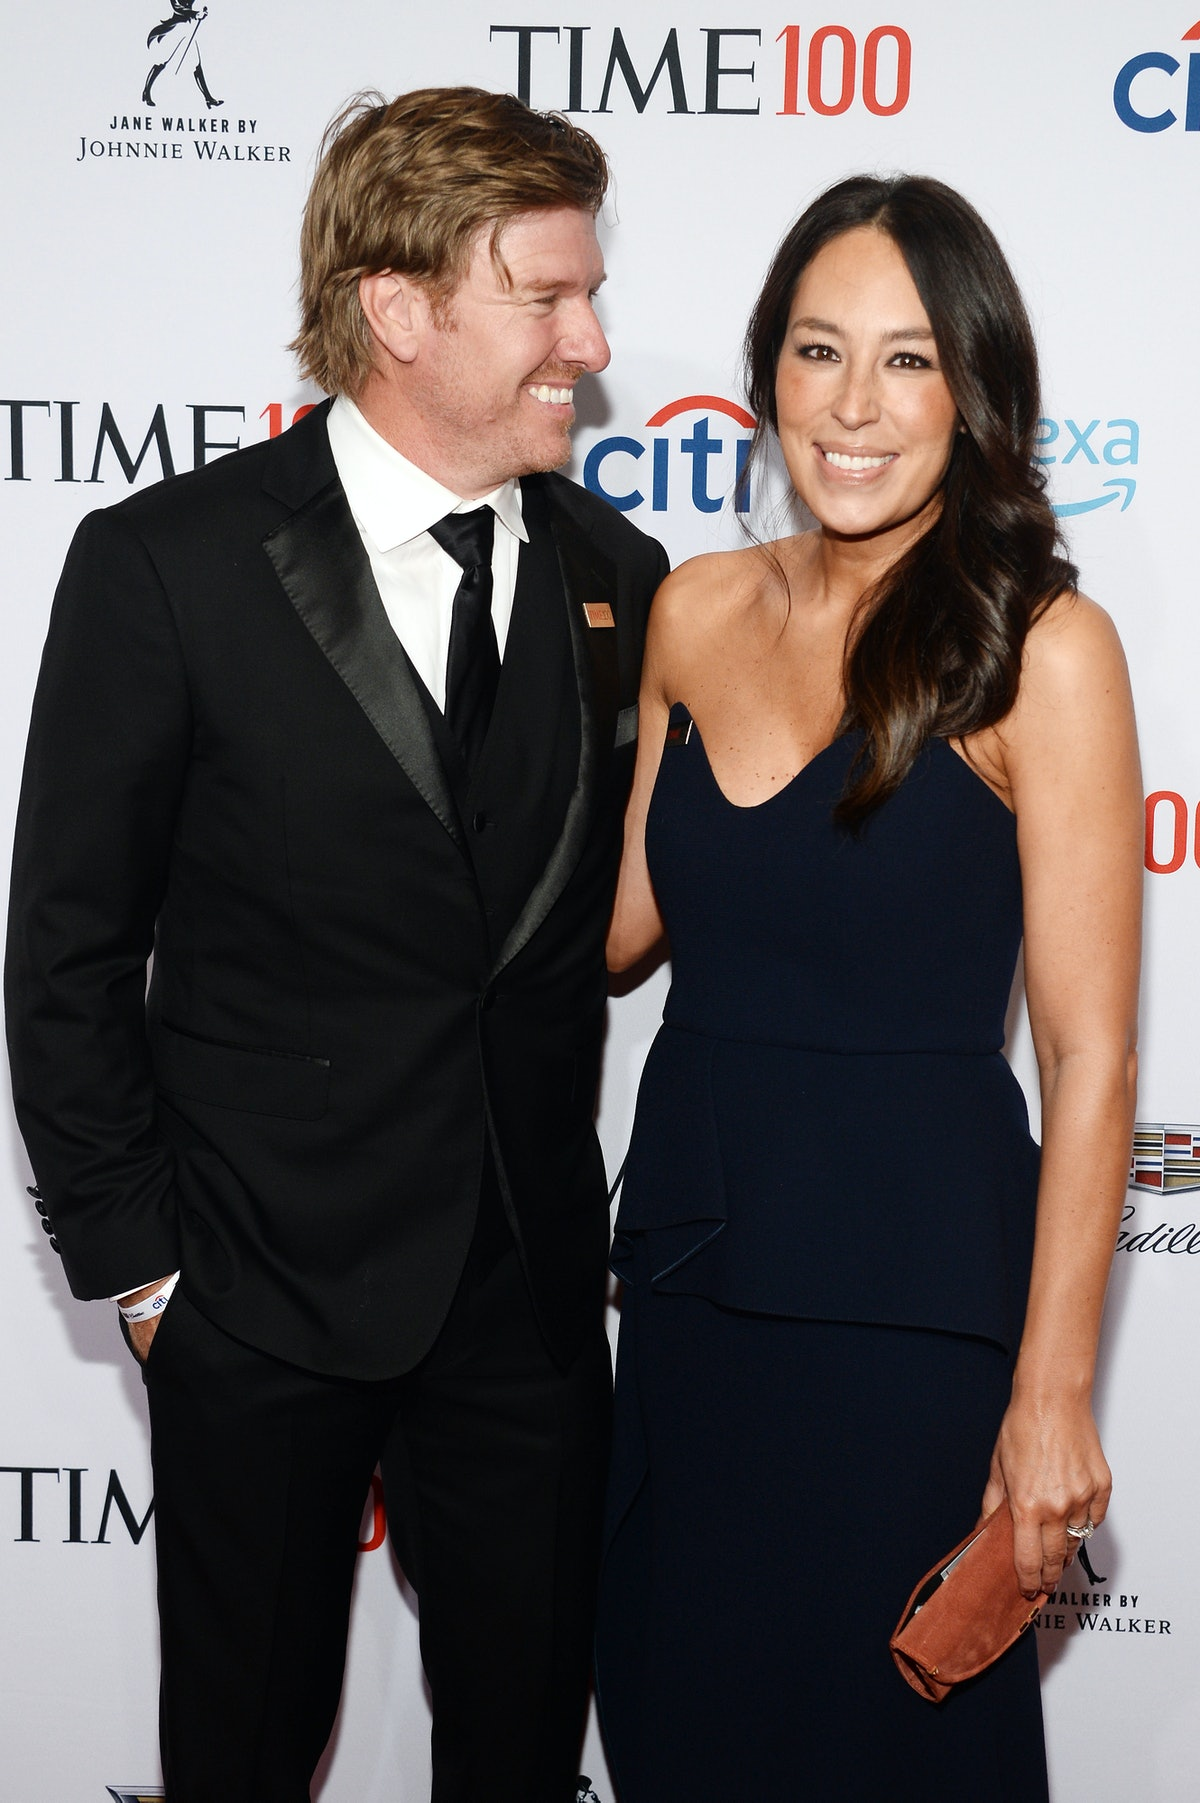 NEW YORK, NEW YORK - APRIL 23: Chip Gaines and Joanna Gaines attend the TIME 100 Gala 2019 Lobby Arr...